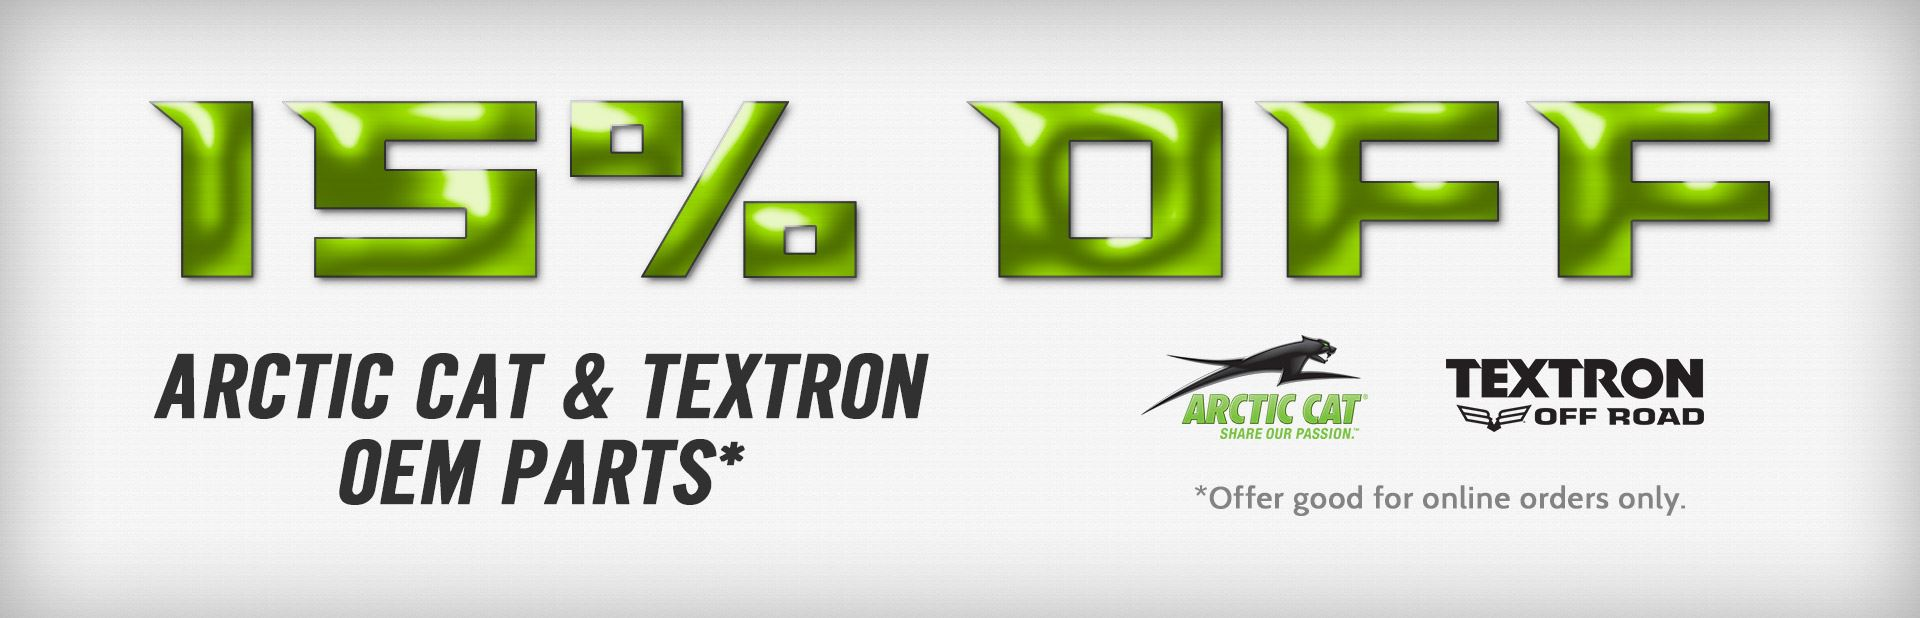 Get 15% off Arctic Cat and Textron Off Road OEM parts! This offer is good for online orders only.